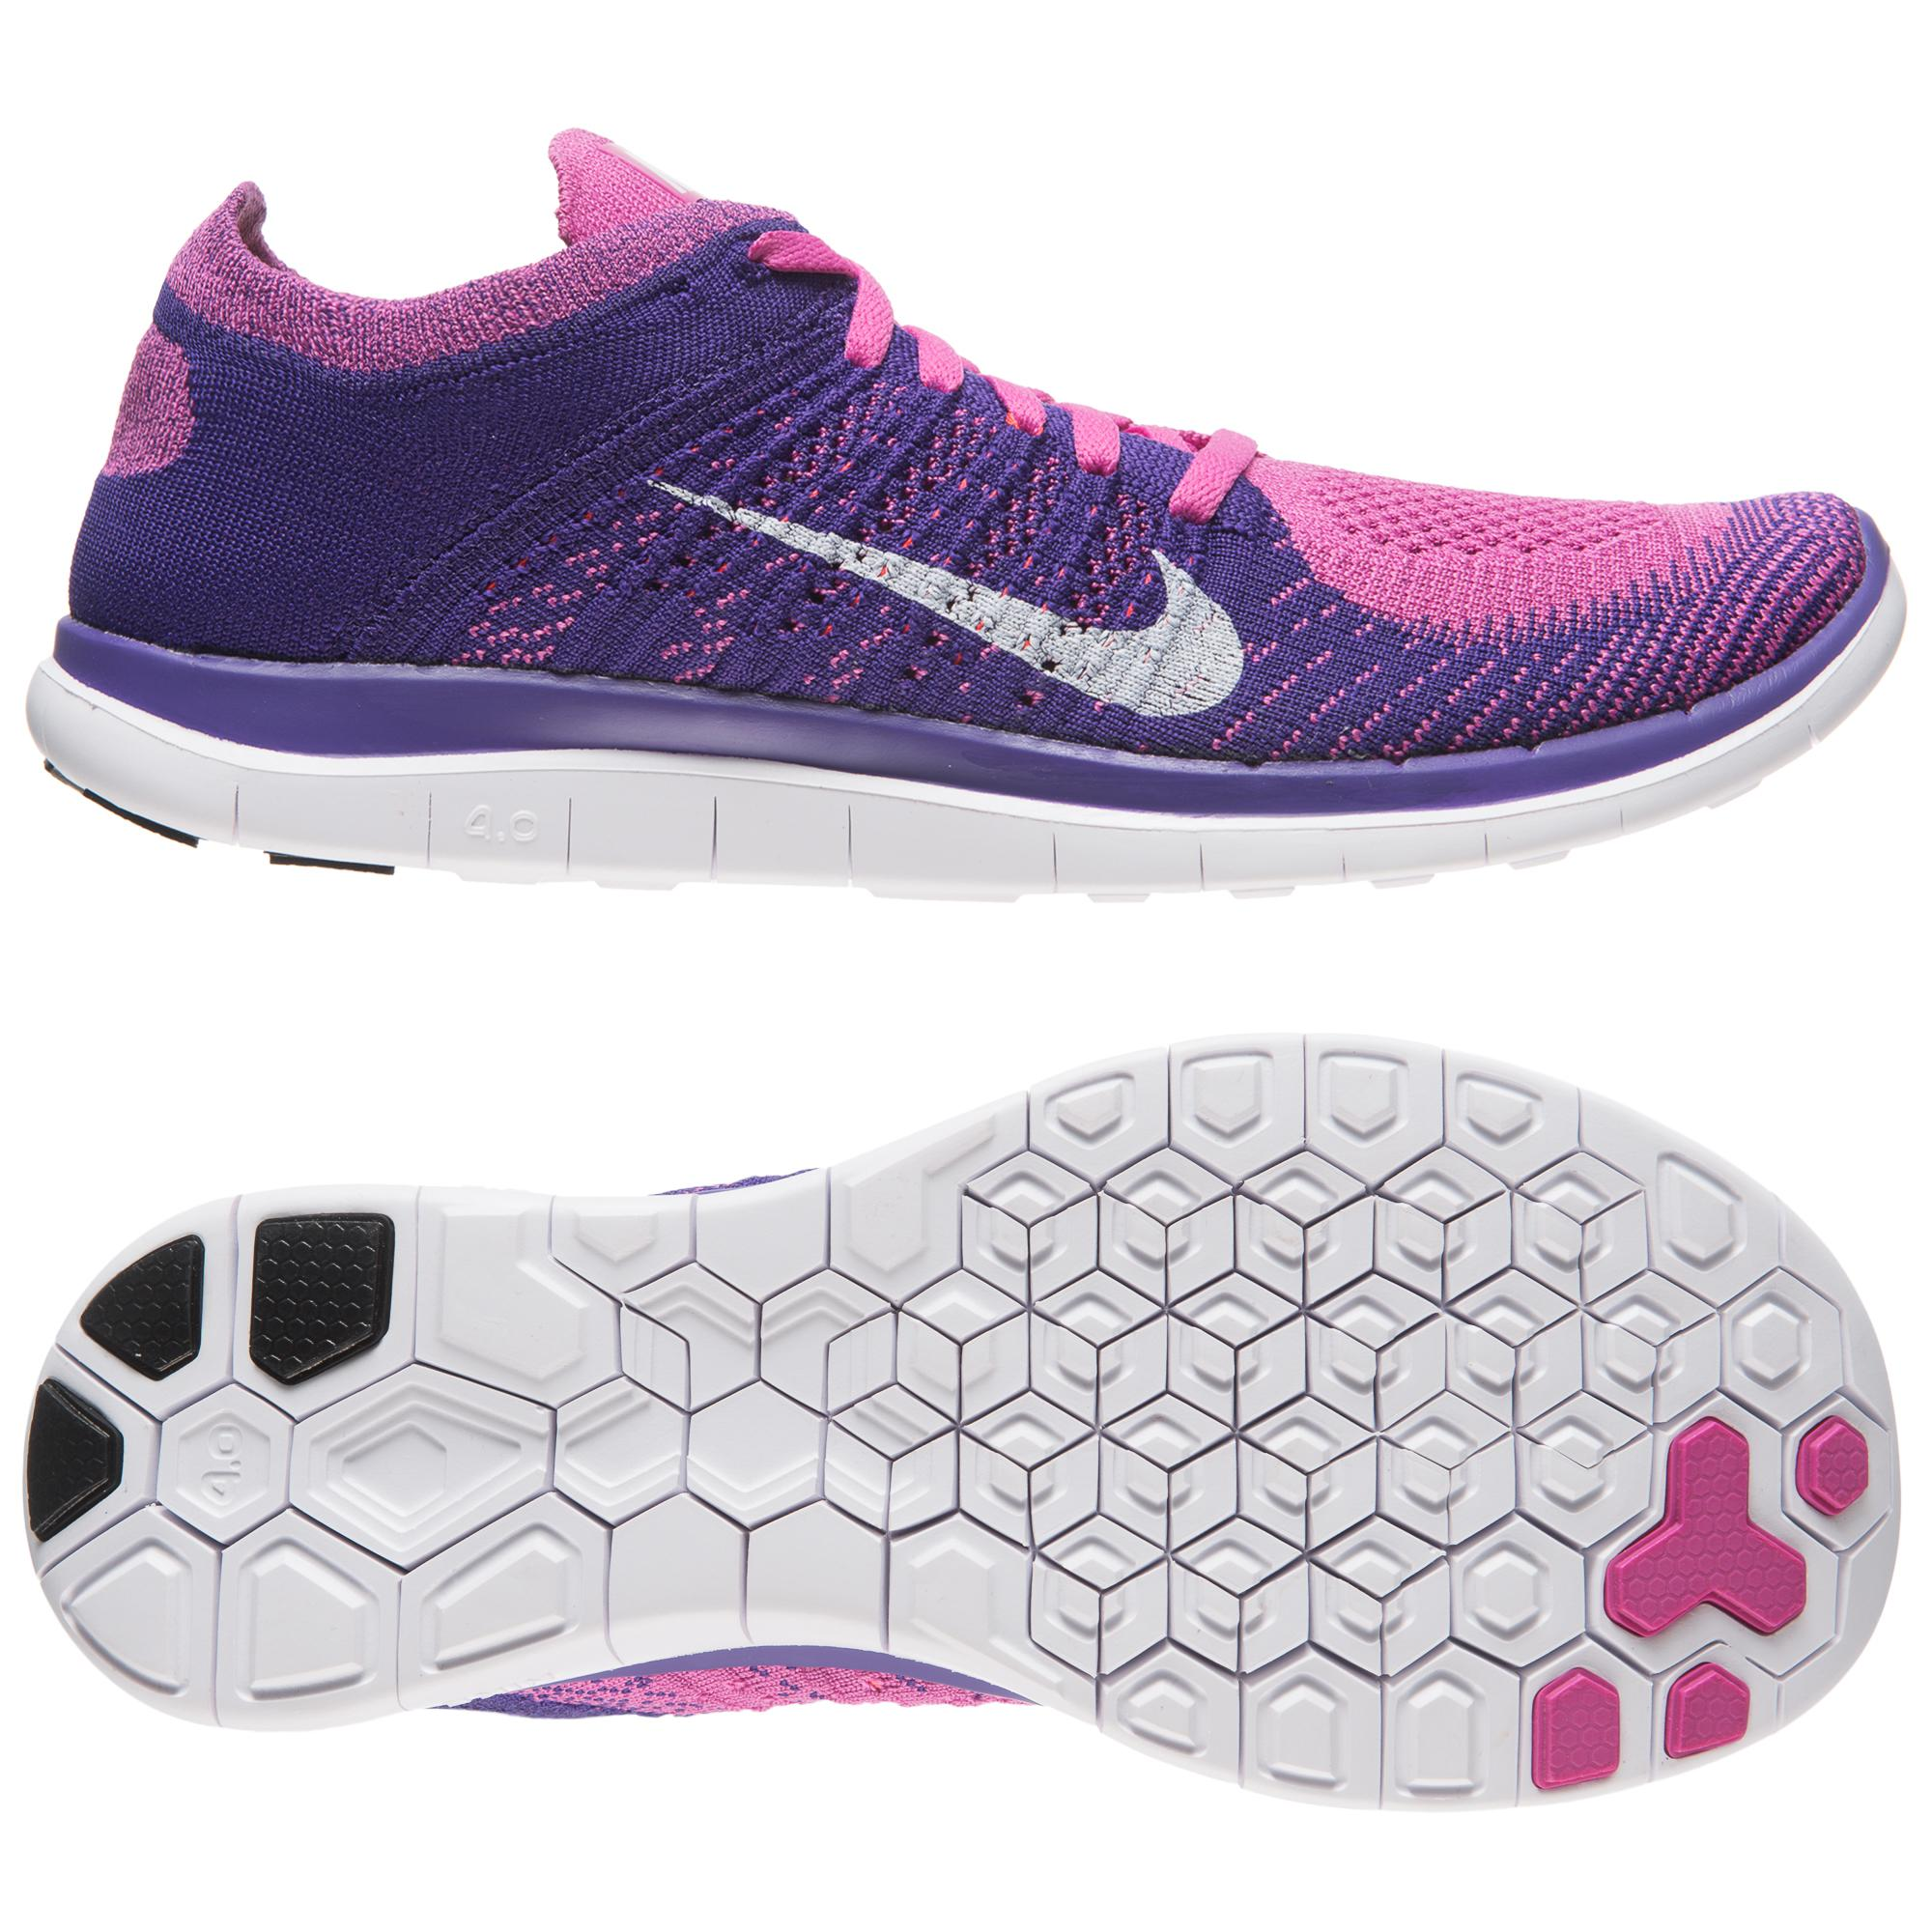 Football365 Nike Free Running Shoe Flyknit 40 Club Pinkcourt Purple Women 120077 Poland